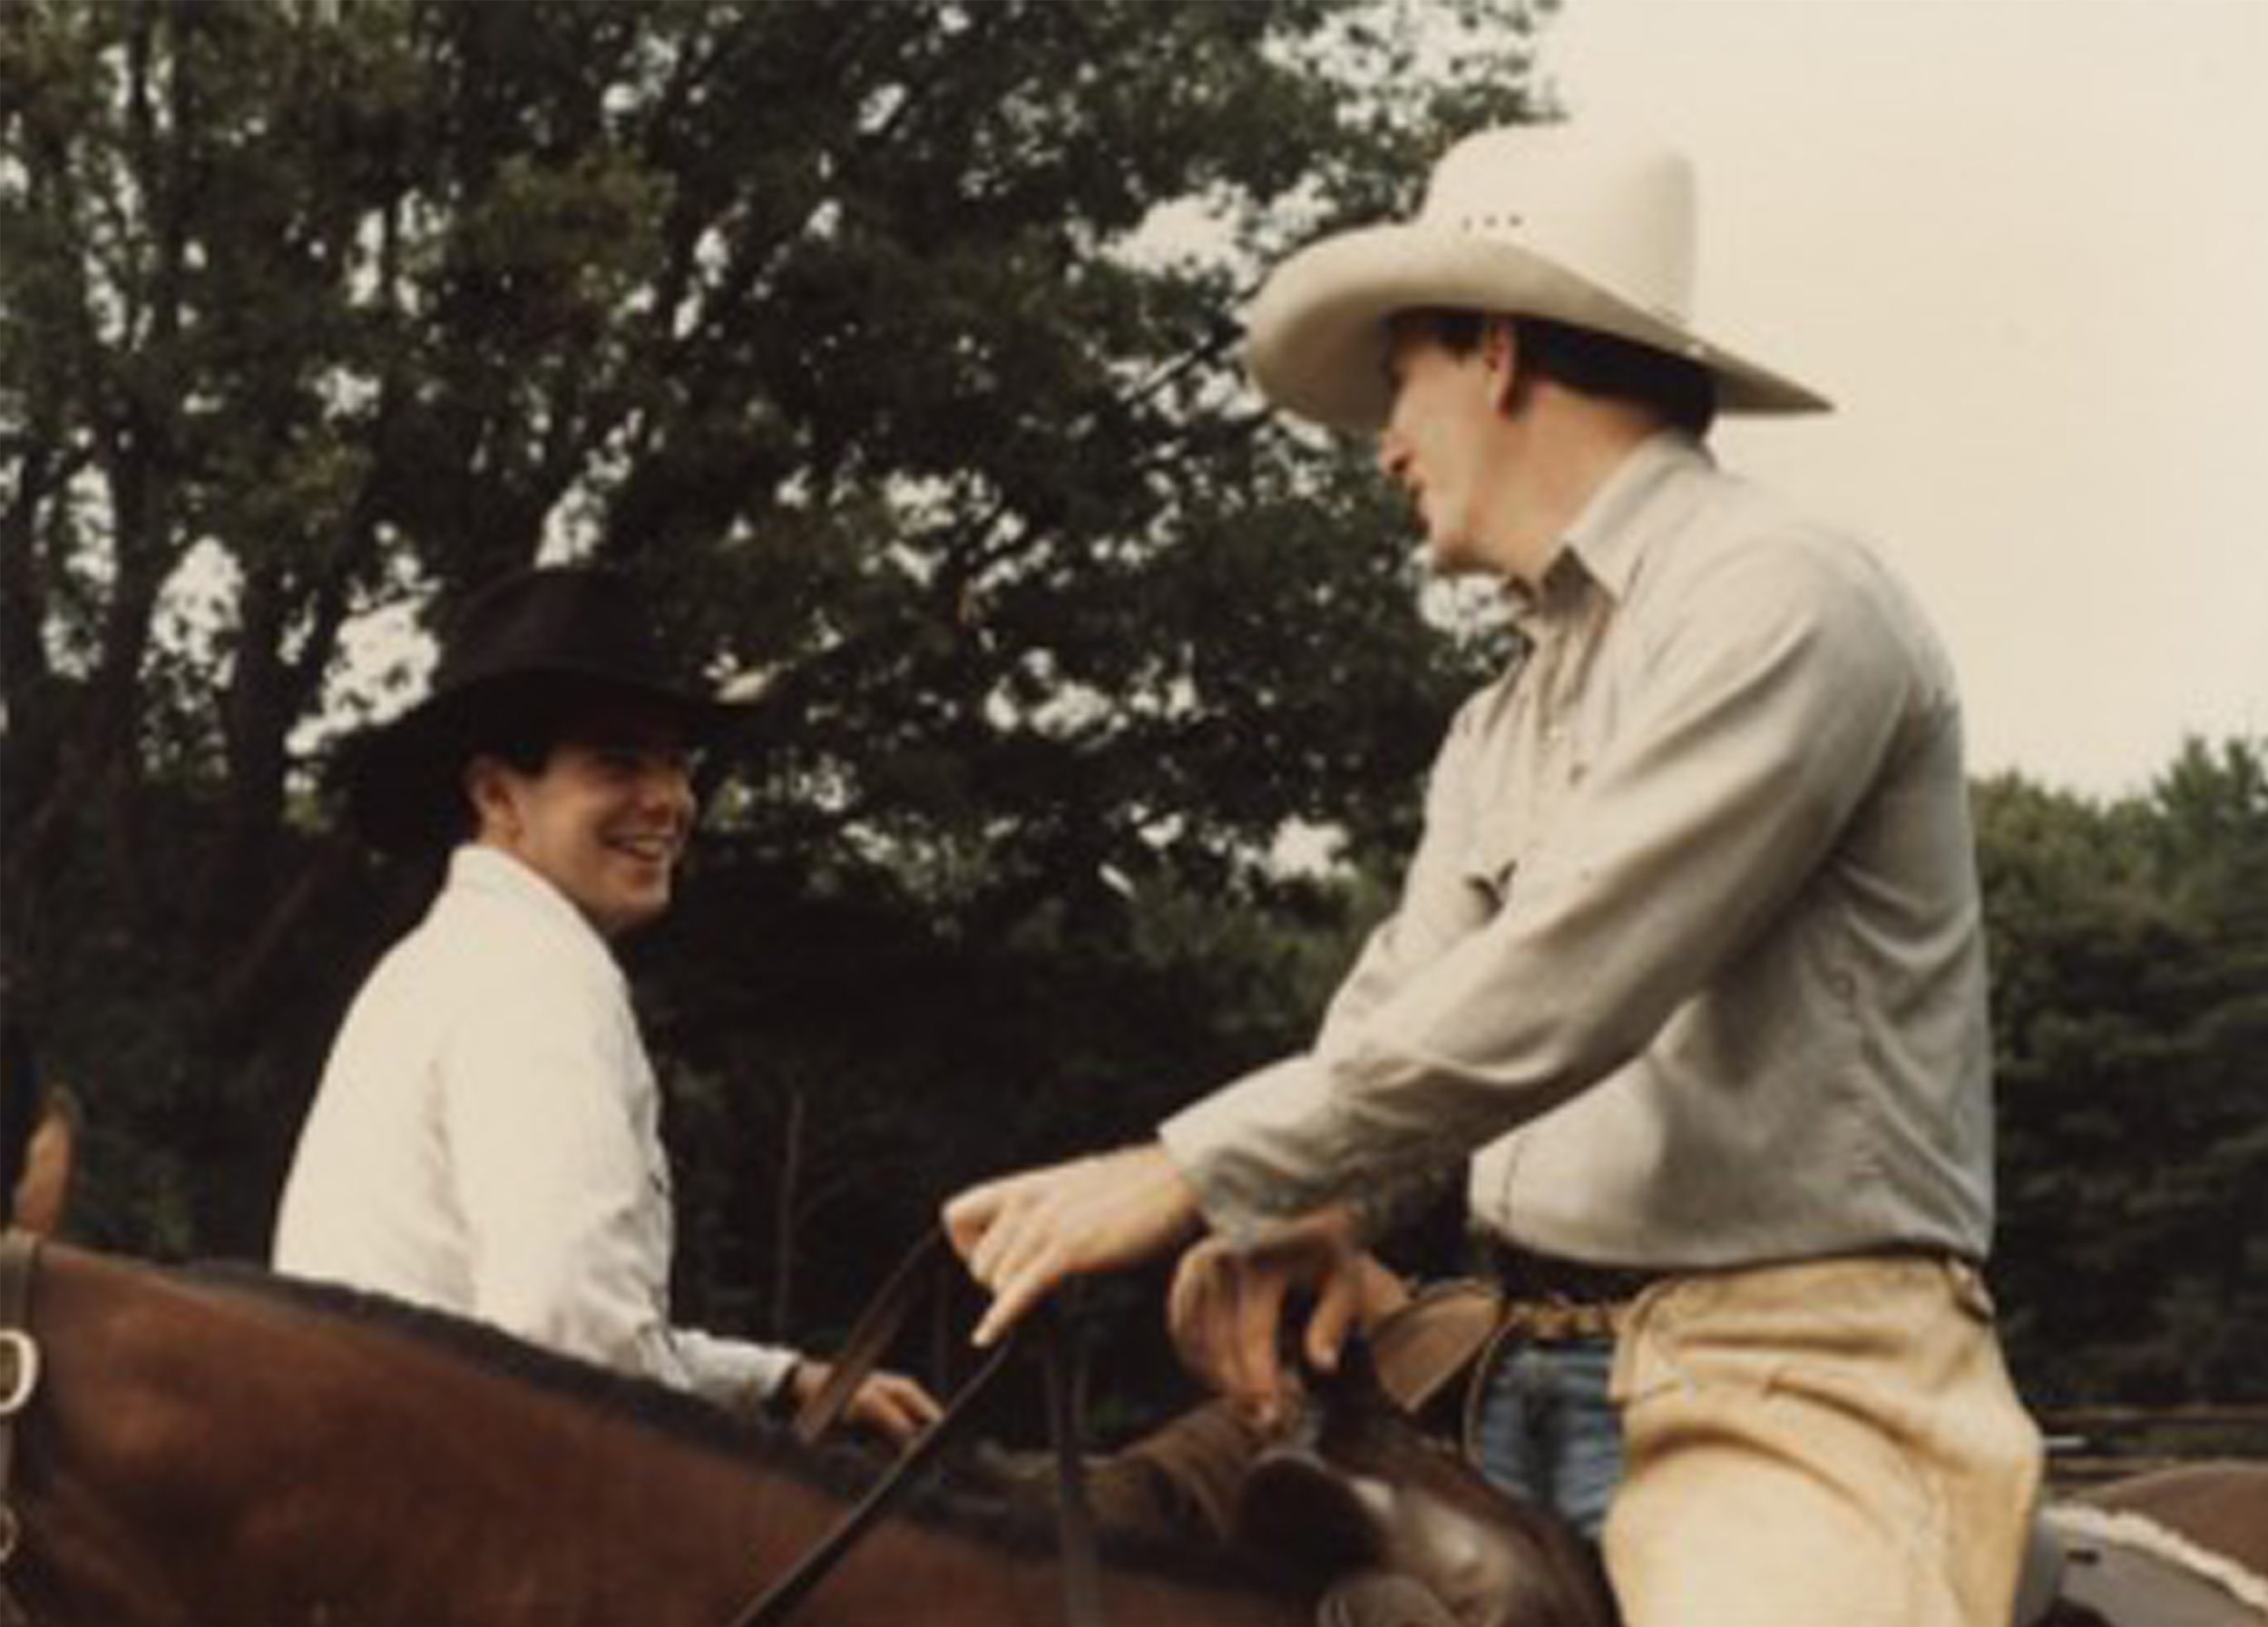 Todd Williams pictured above during his days working on staff at Camp Hebron